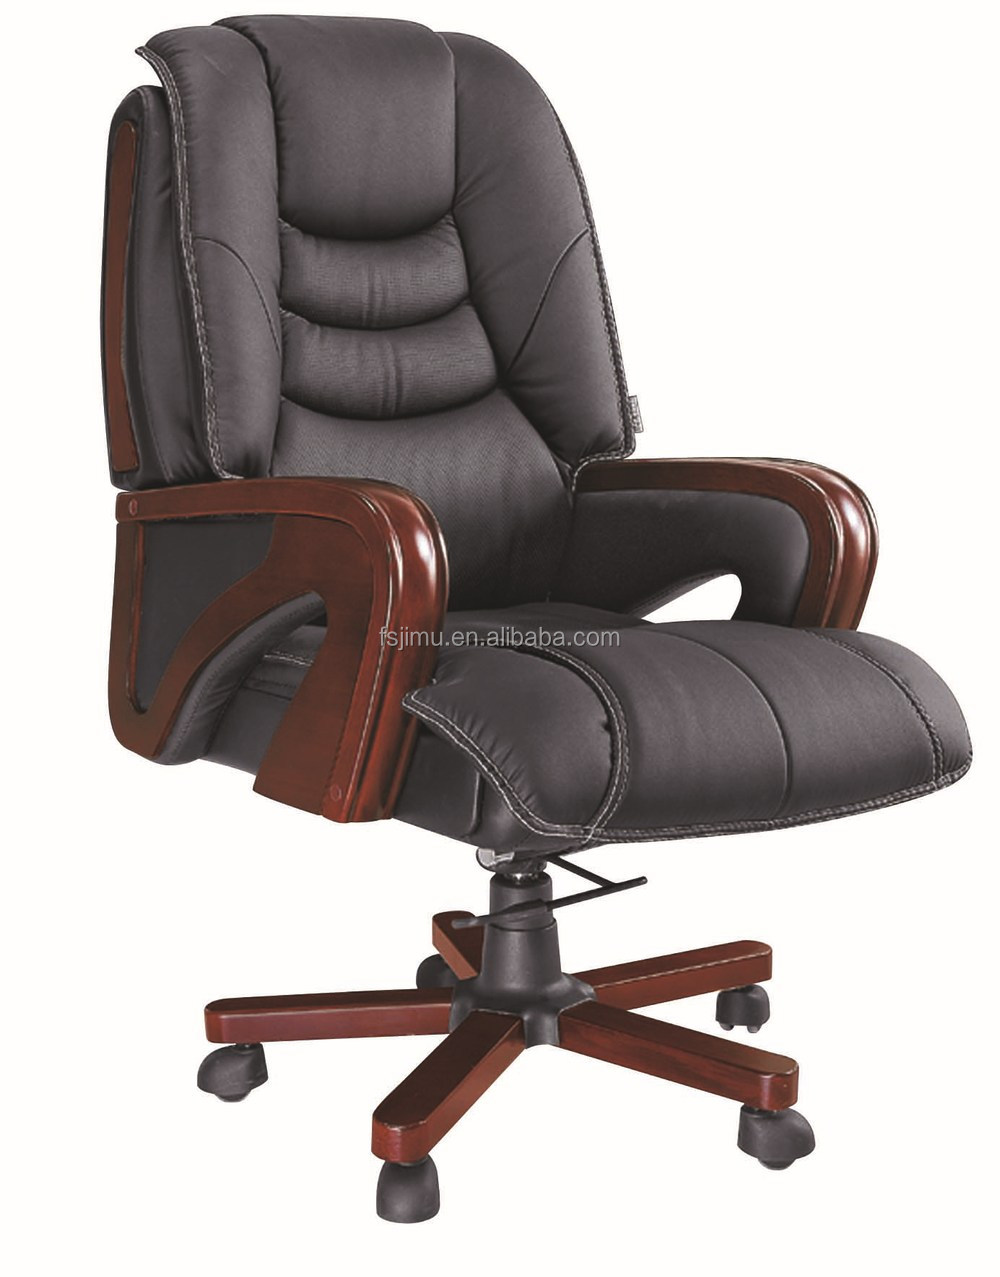 Office furniture top grain luxury leather executive chair for Luxury leather office chairs